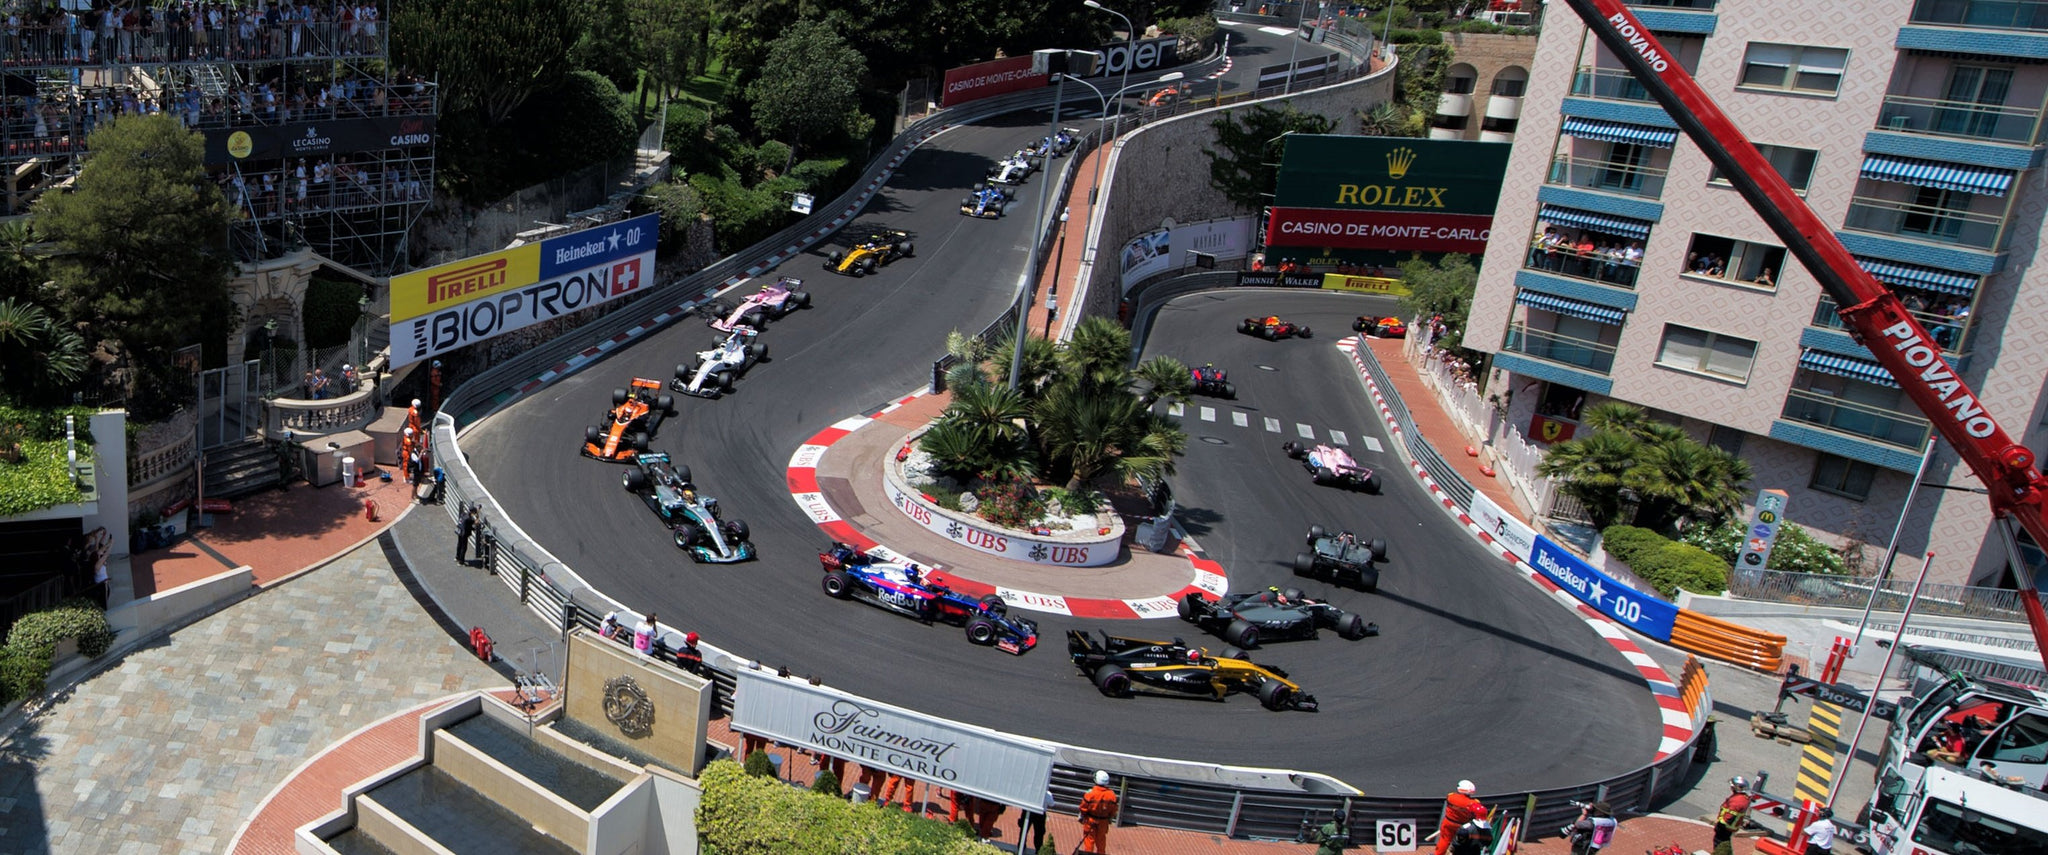 Monaco GP 3 Nights Apartment Stay Nice with Fairmont Hospitality Package - Front Row Events